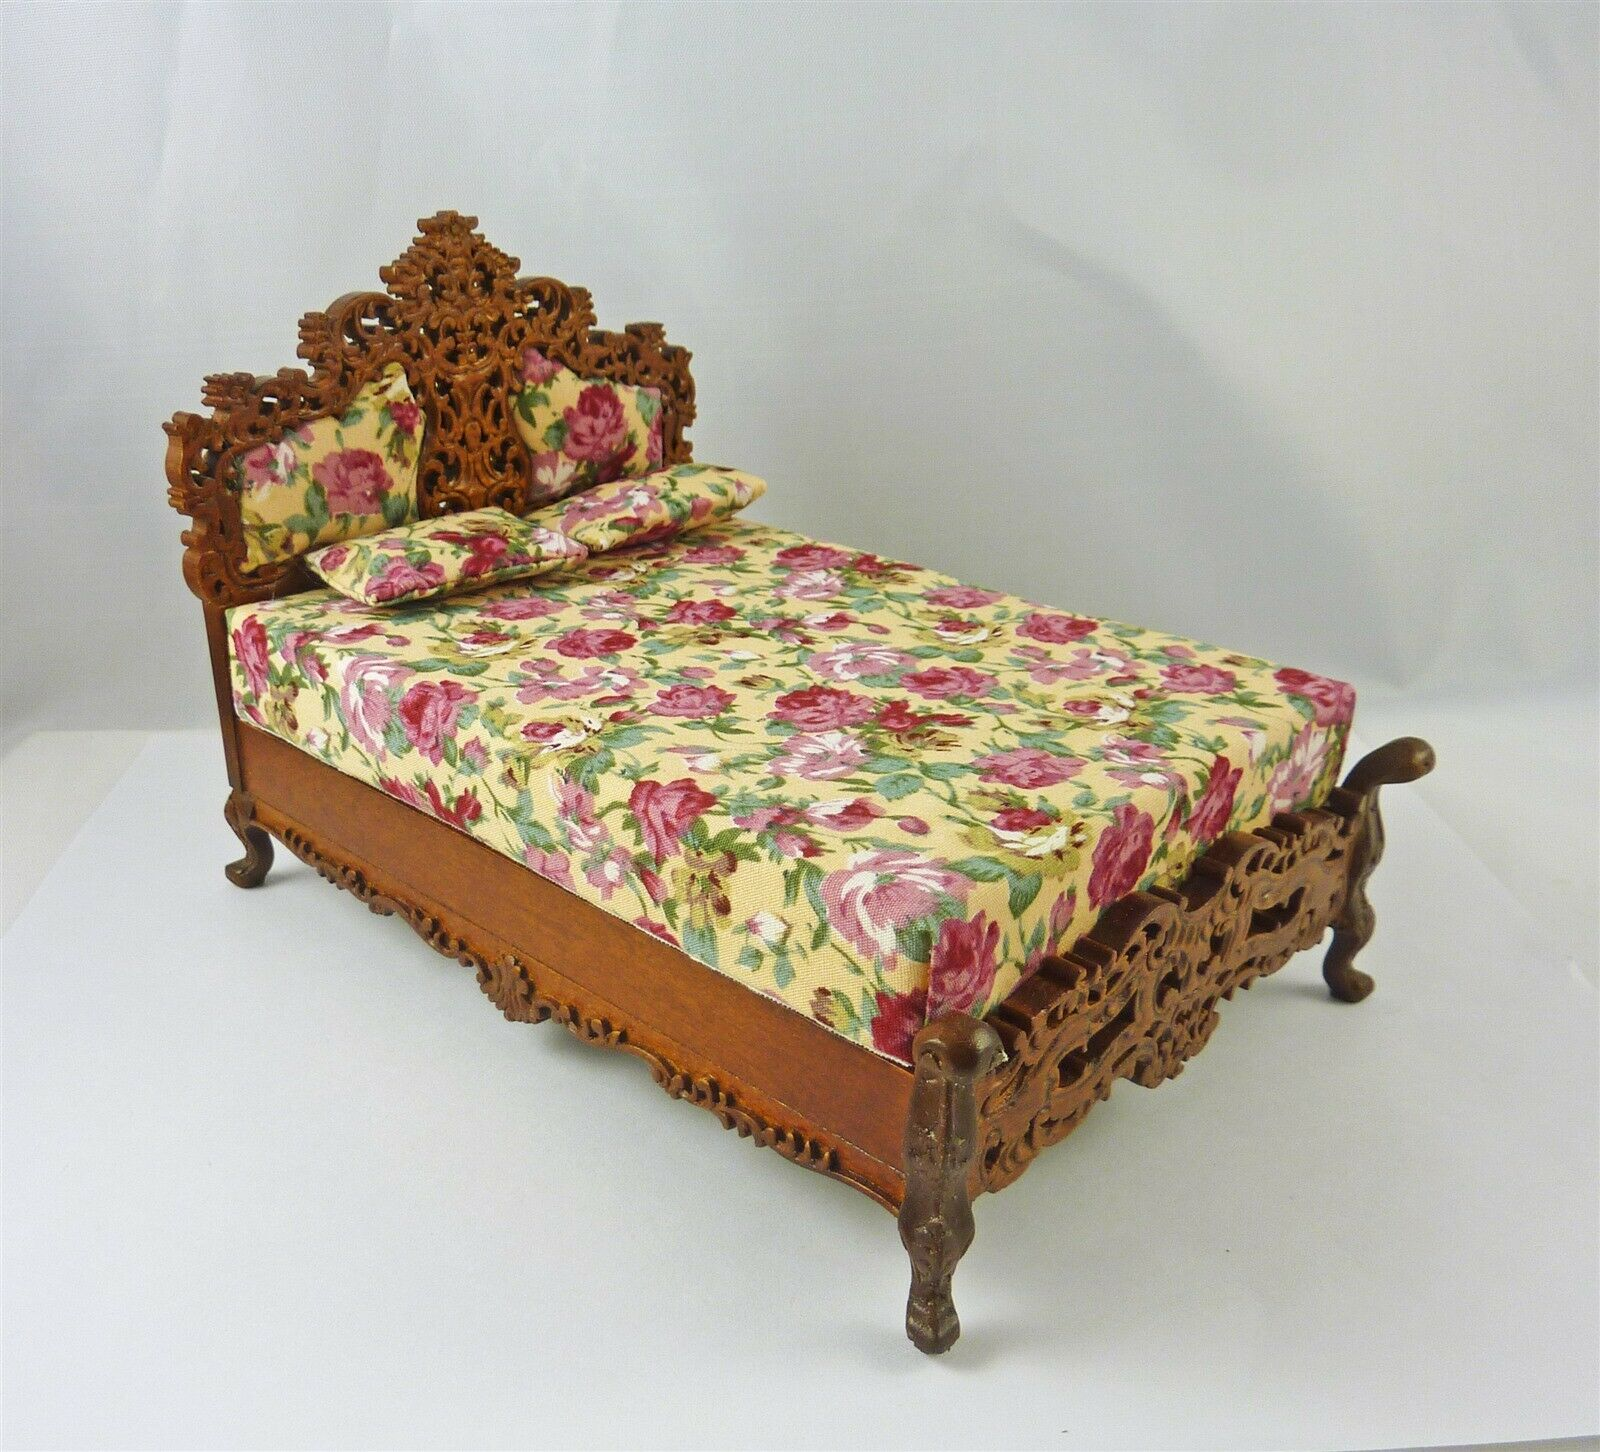 Dollhouse Miniature Elegant Bourbon Bed, P6391